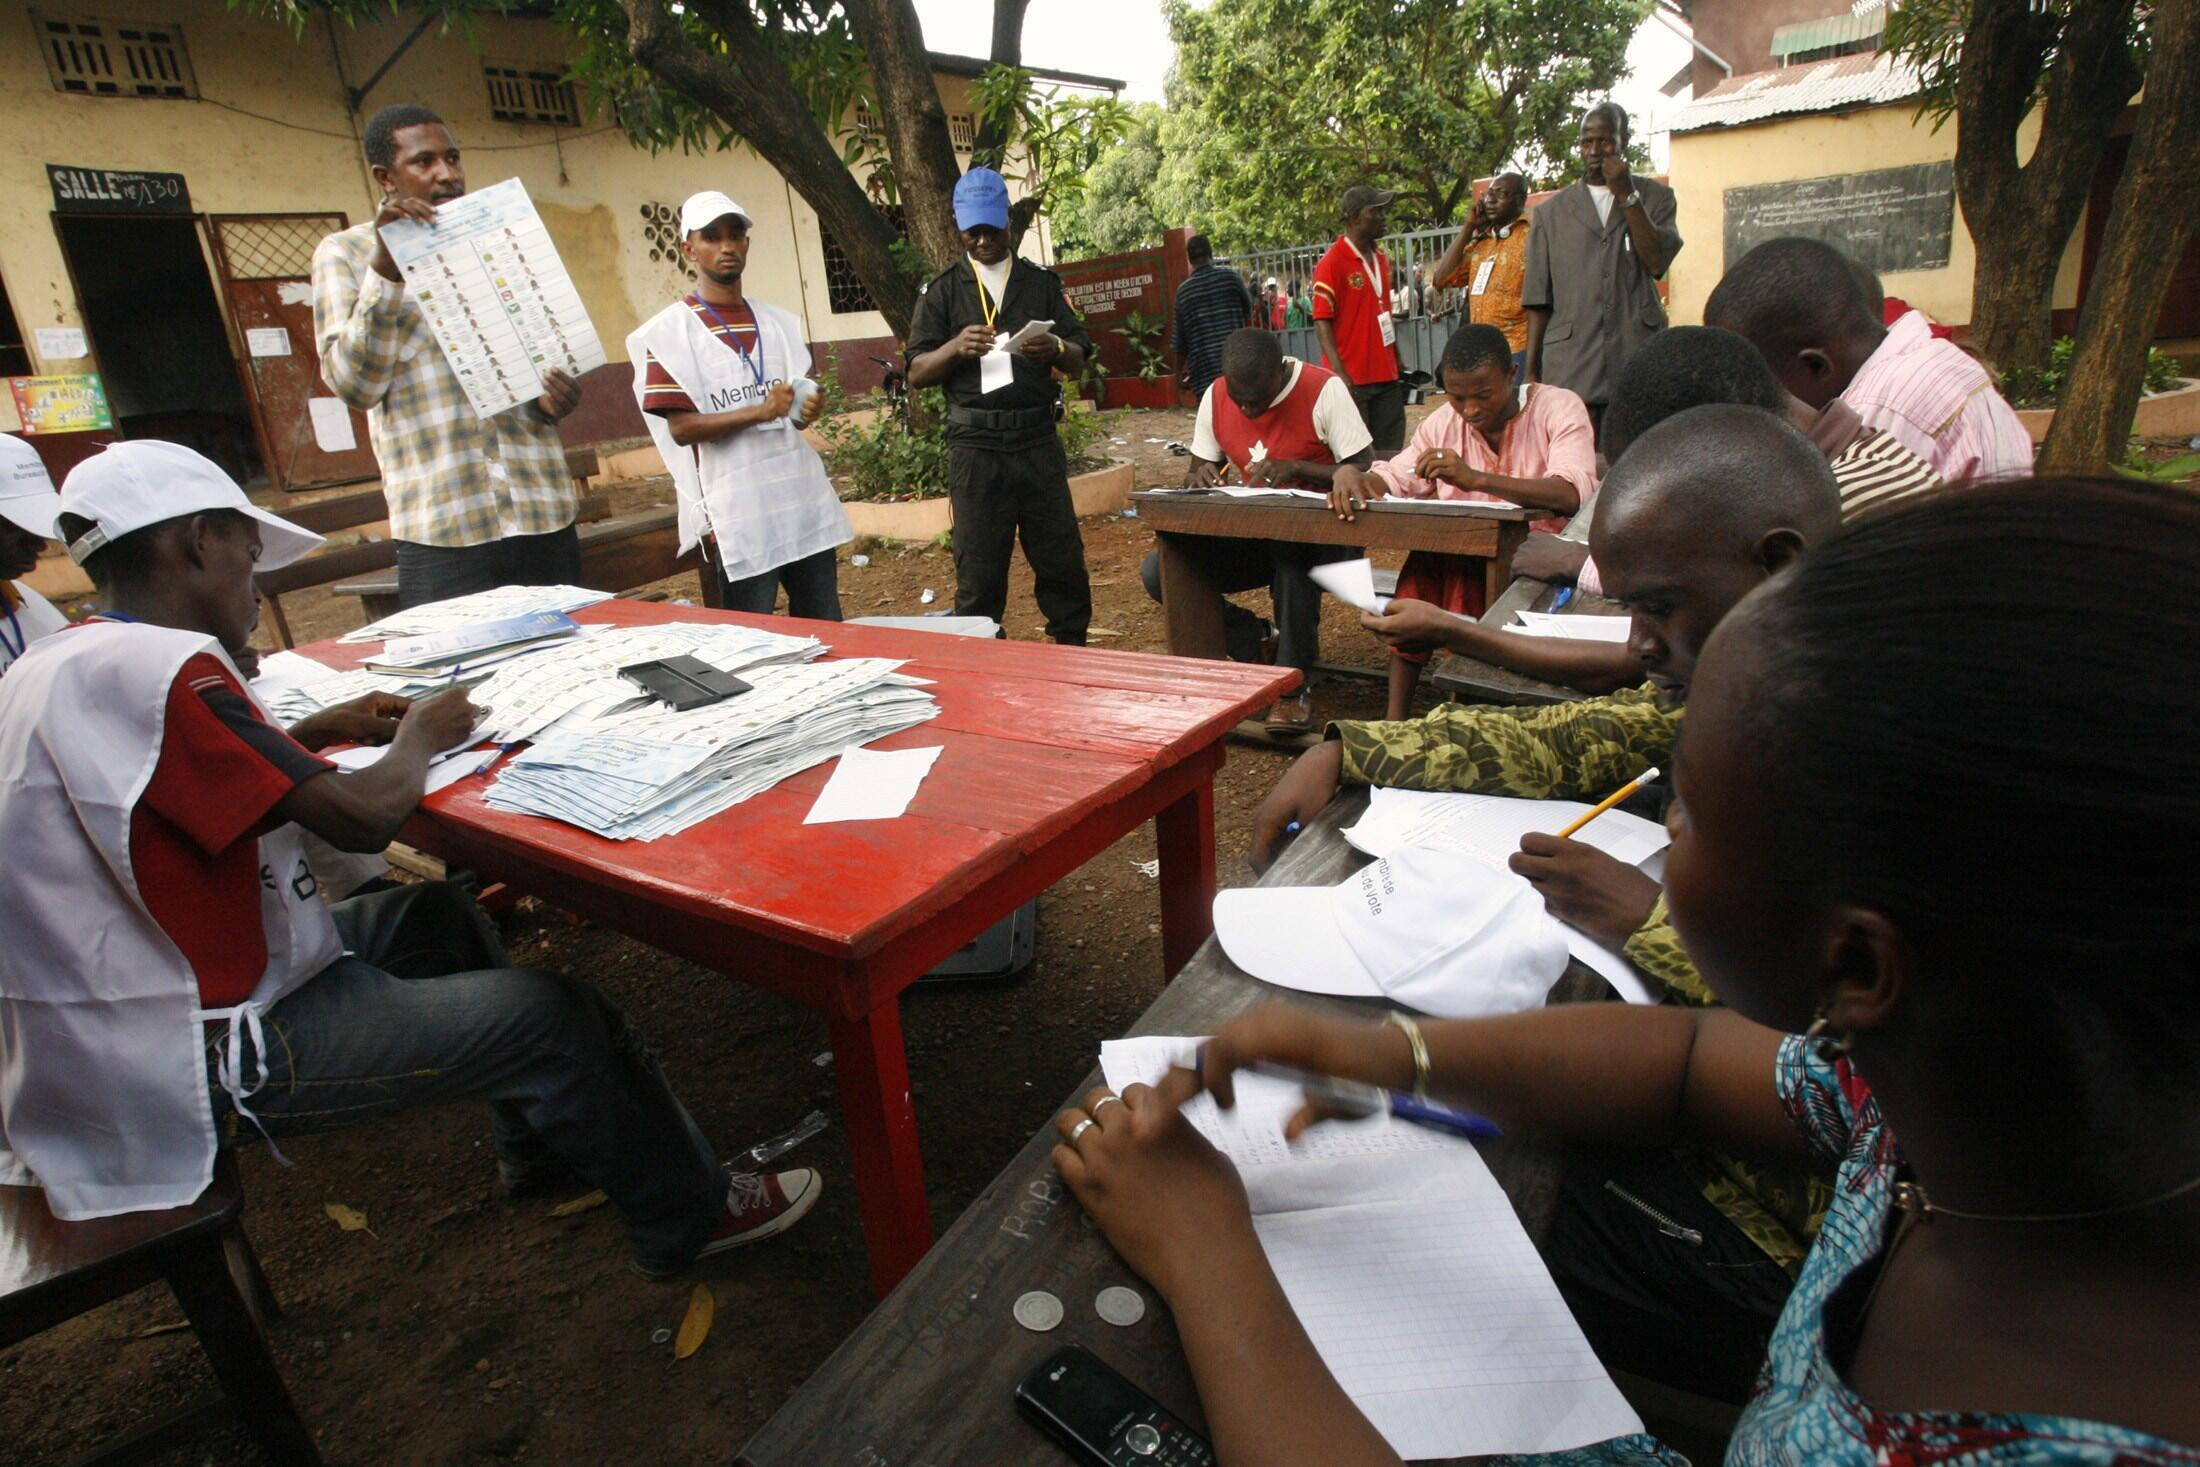 Counting votes in Conakry